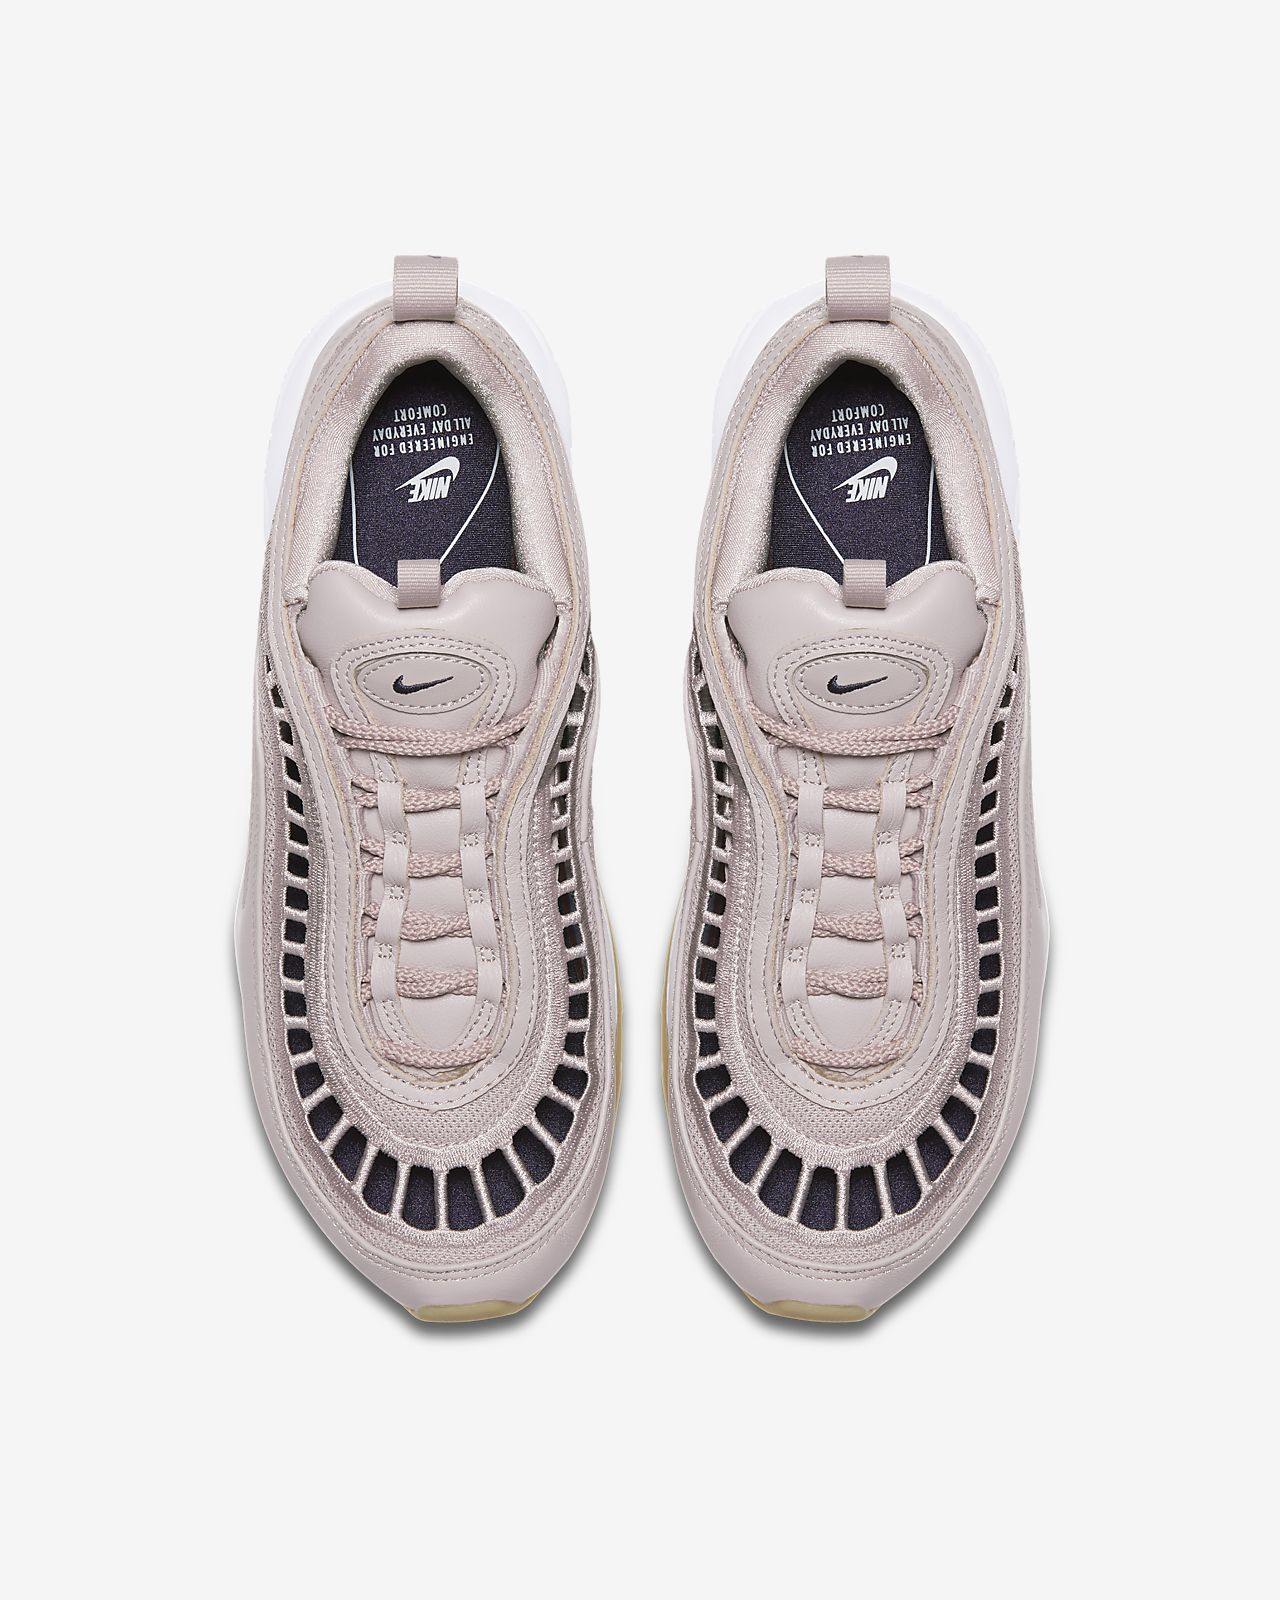 Max '17 Chaussure 97 Ultra Air Be Femme Pour Nike Si wOO4gxn